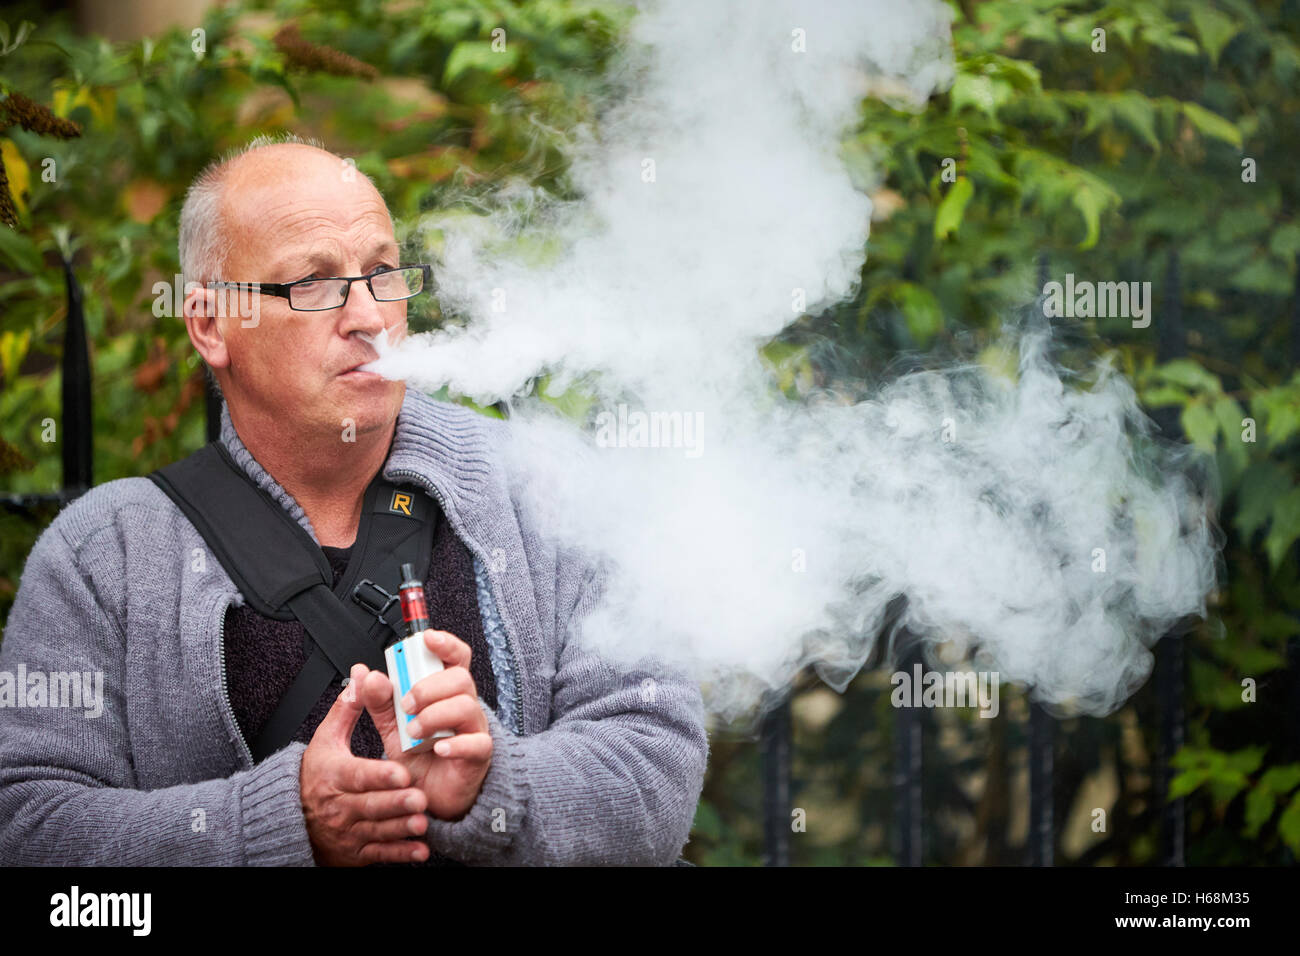 A man vaping - Stock Image